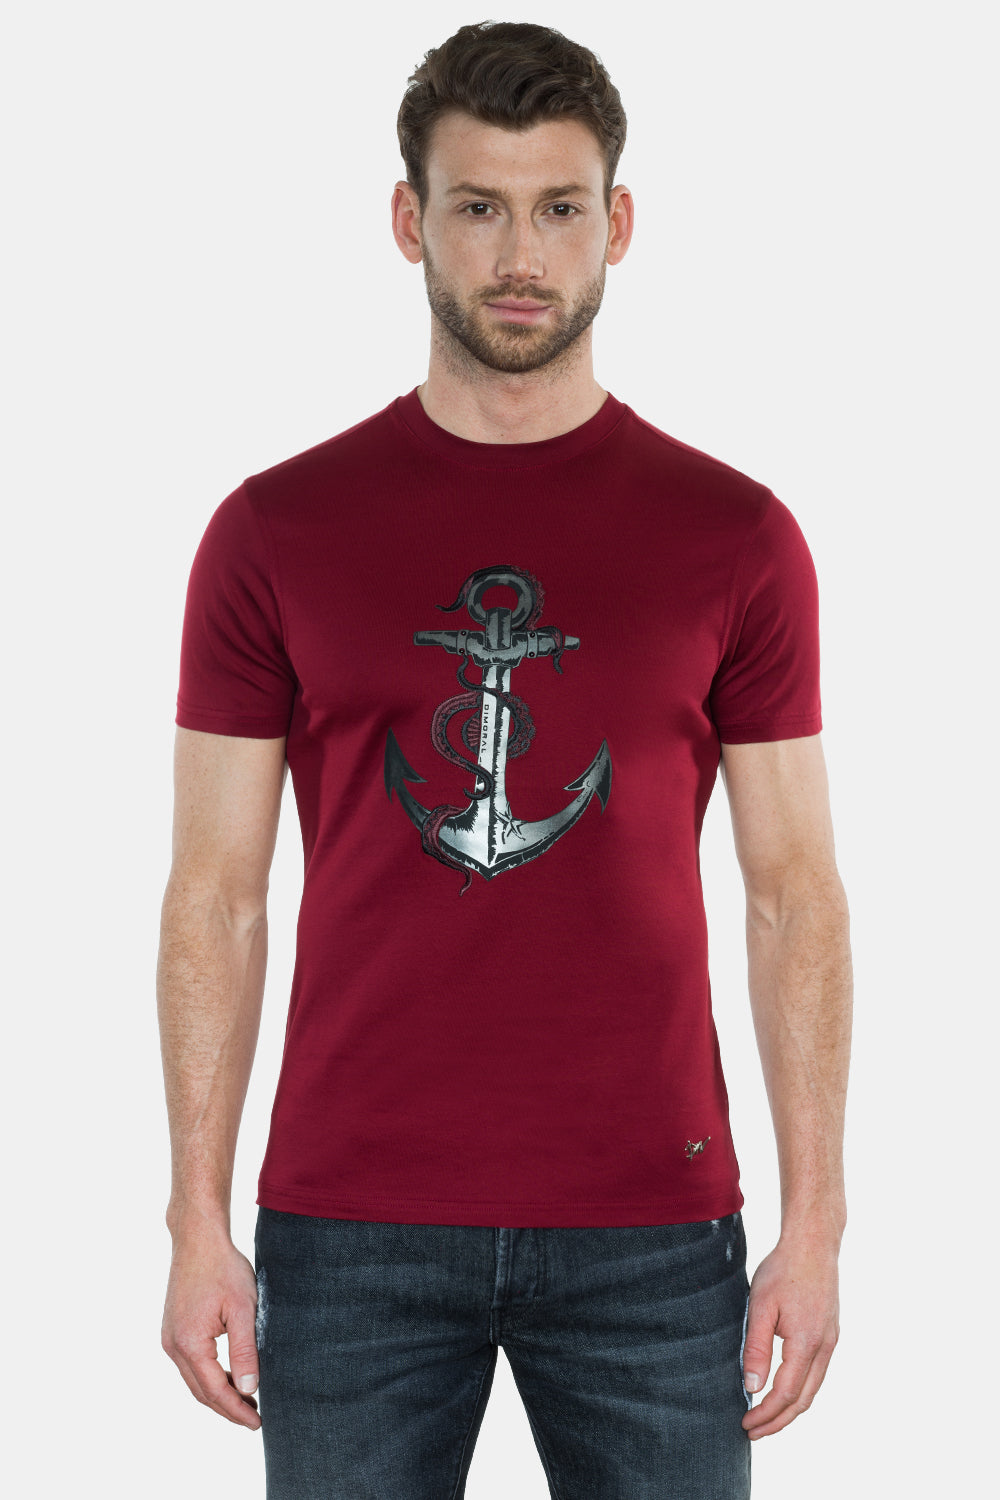 ANCHOR PRINT/EMBROIDERY T-SHIRT - DIMORAL OFFICIAL